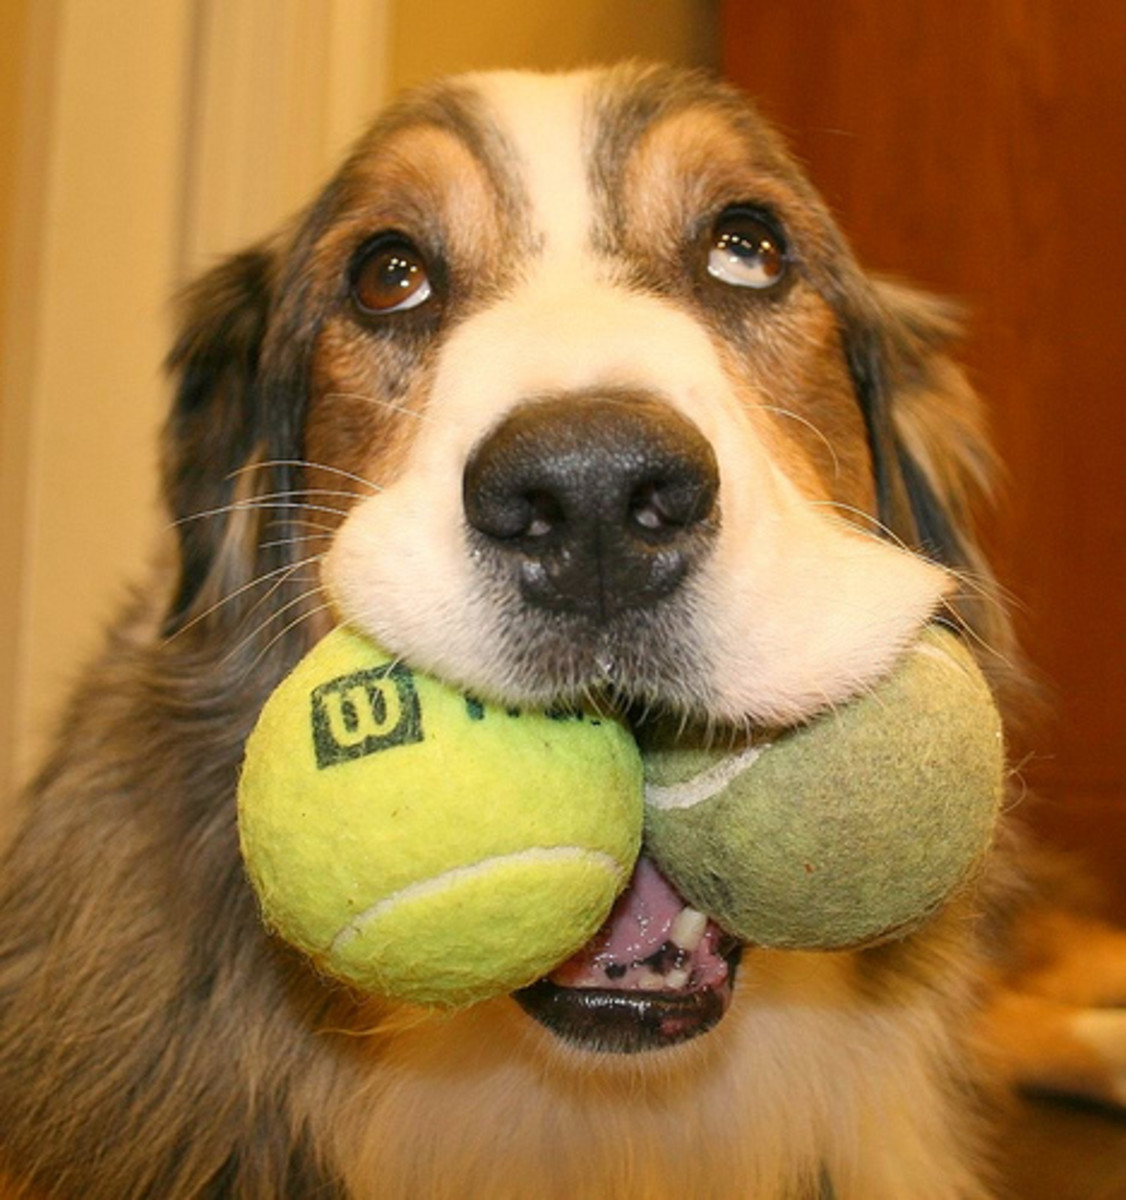 Even though it's so cute, don't train your dog to put 2 tennis balls in his mouth.